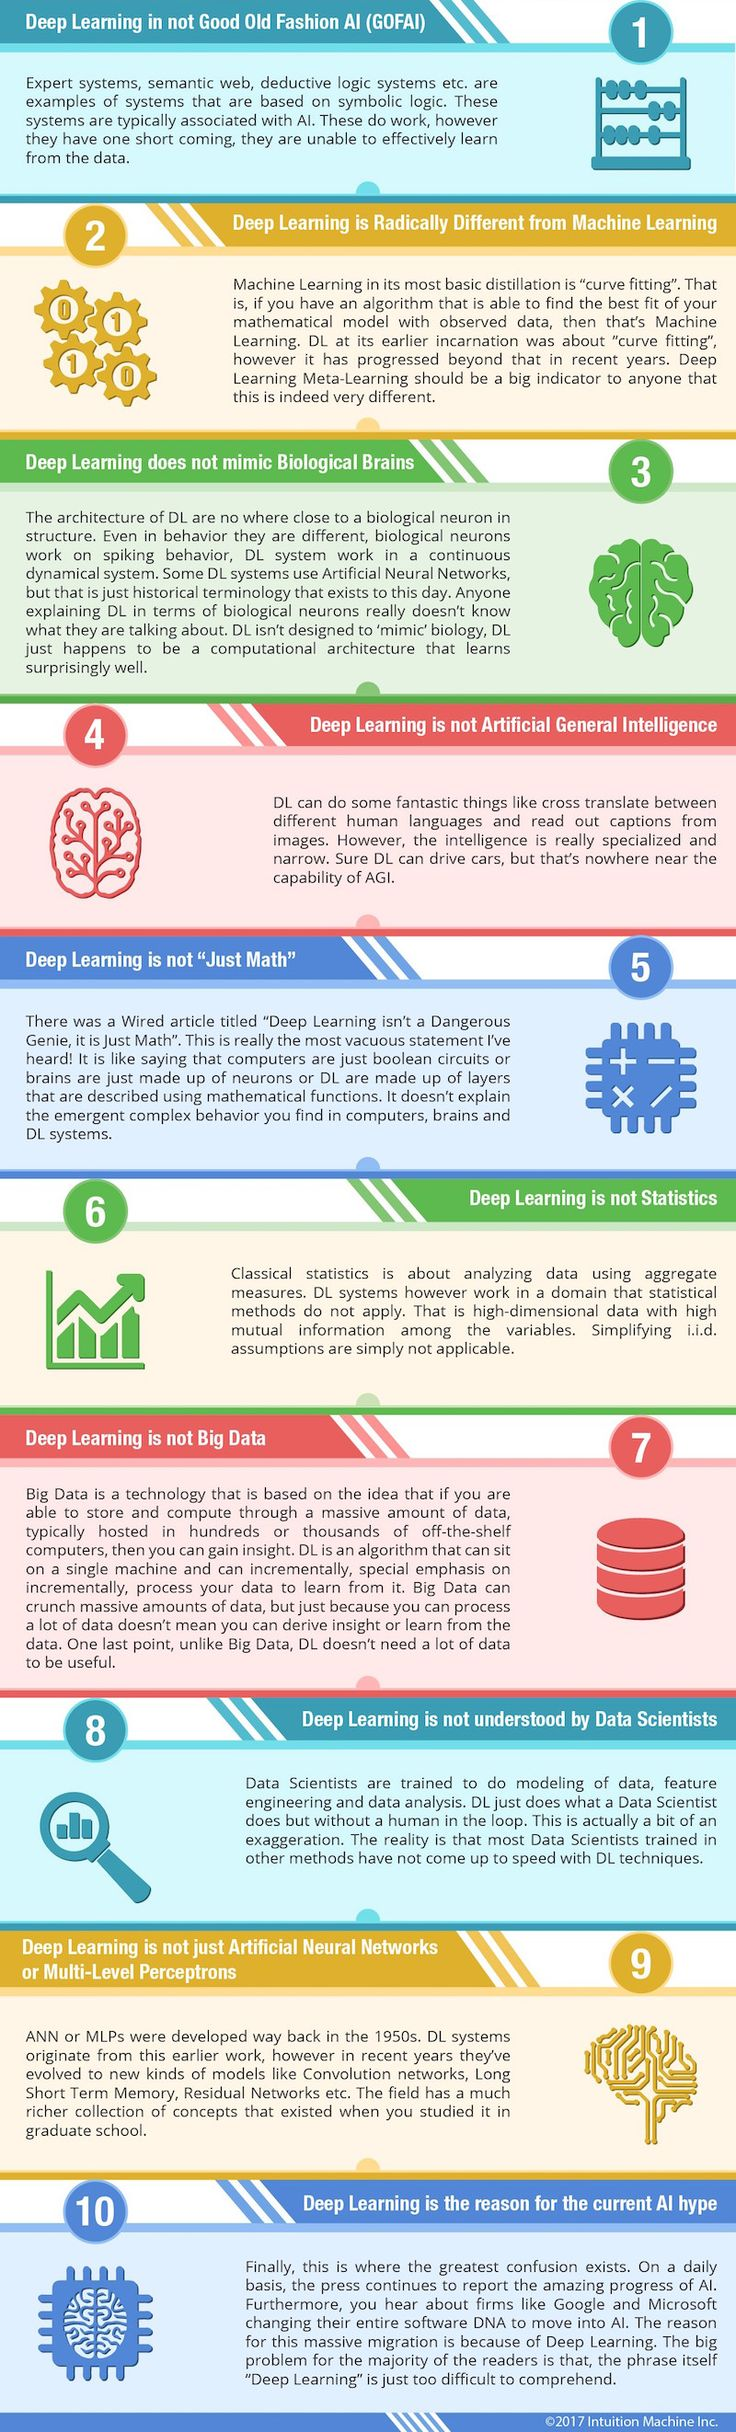 Share This Infographic: 10 Truths about Deep Learning | Open Data Science